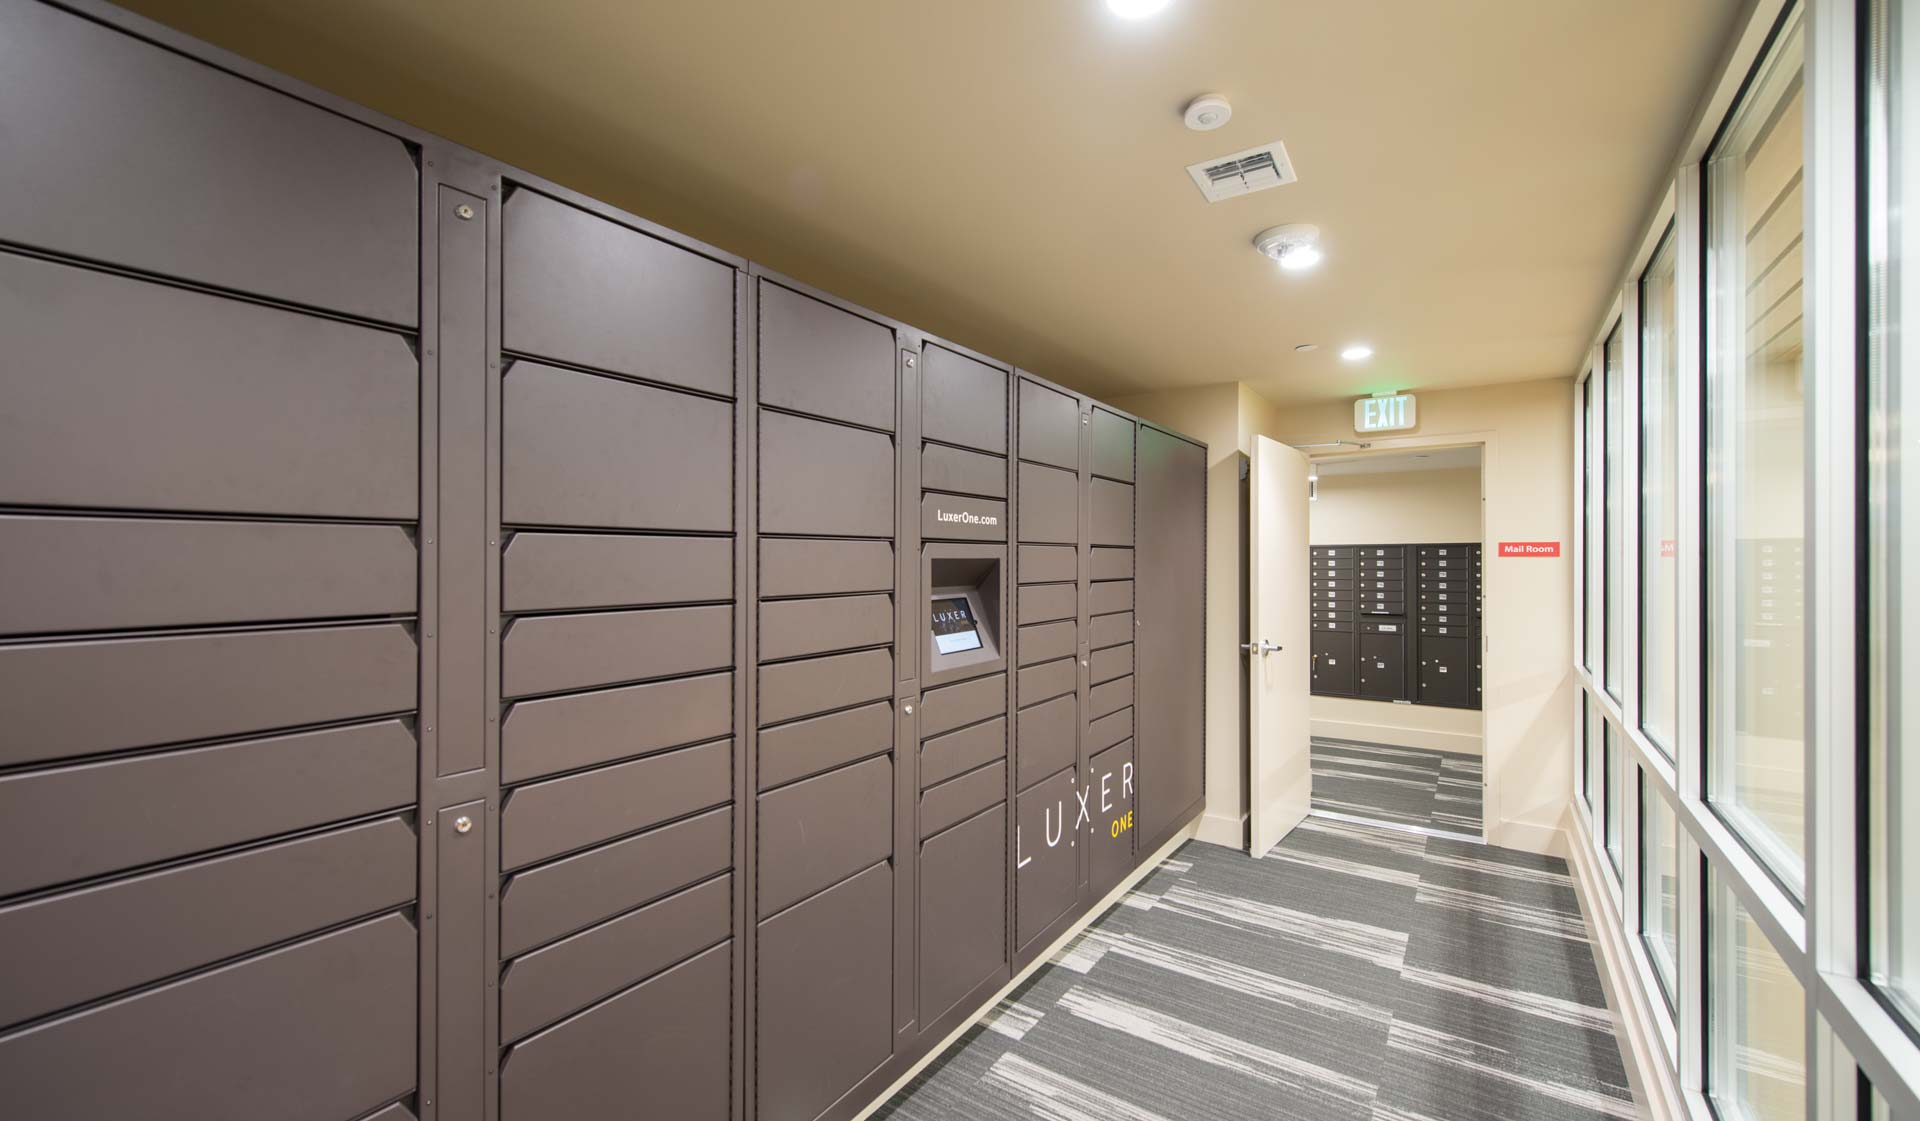 Chestnut Hall Apartments - package lockers